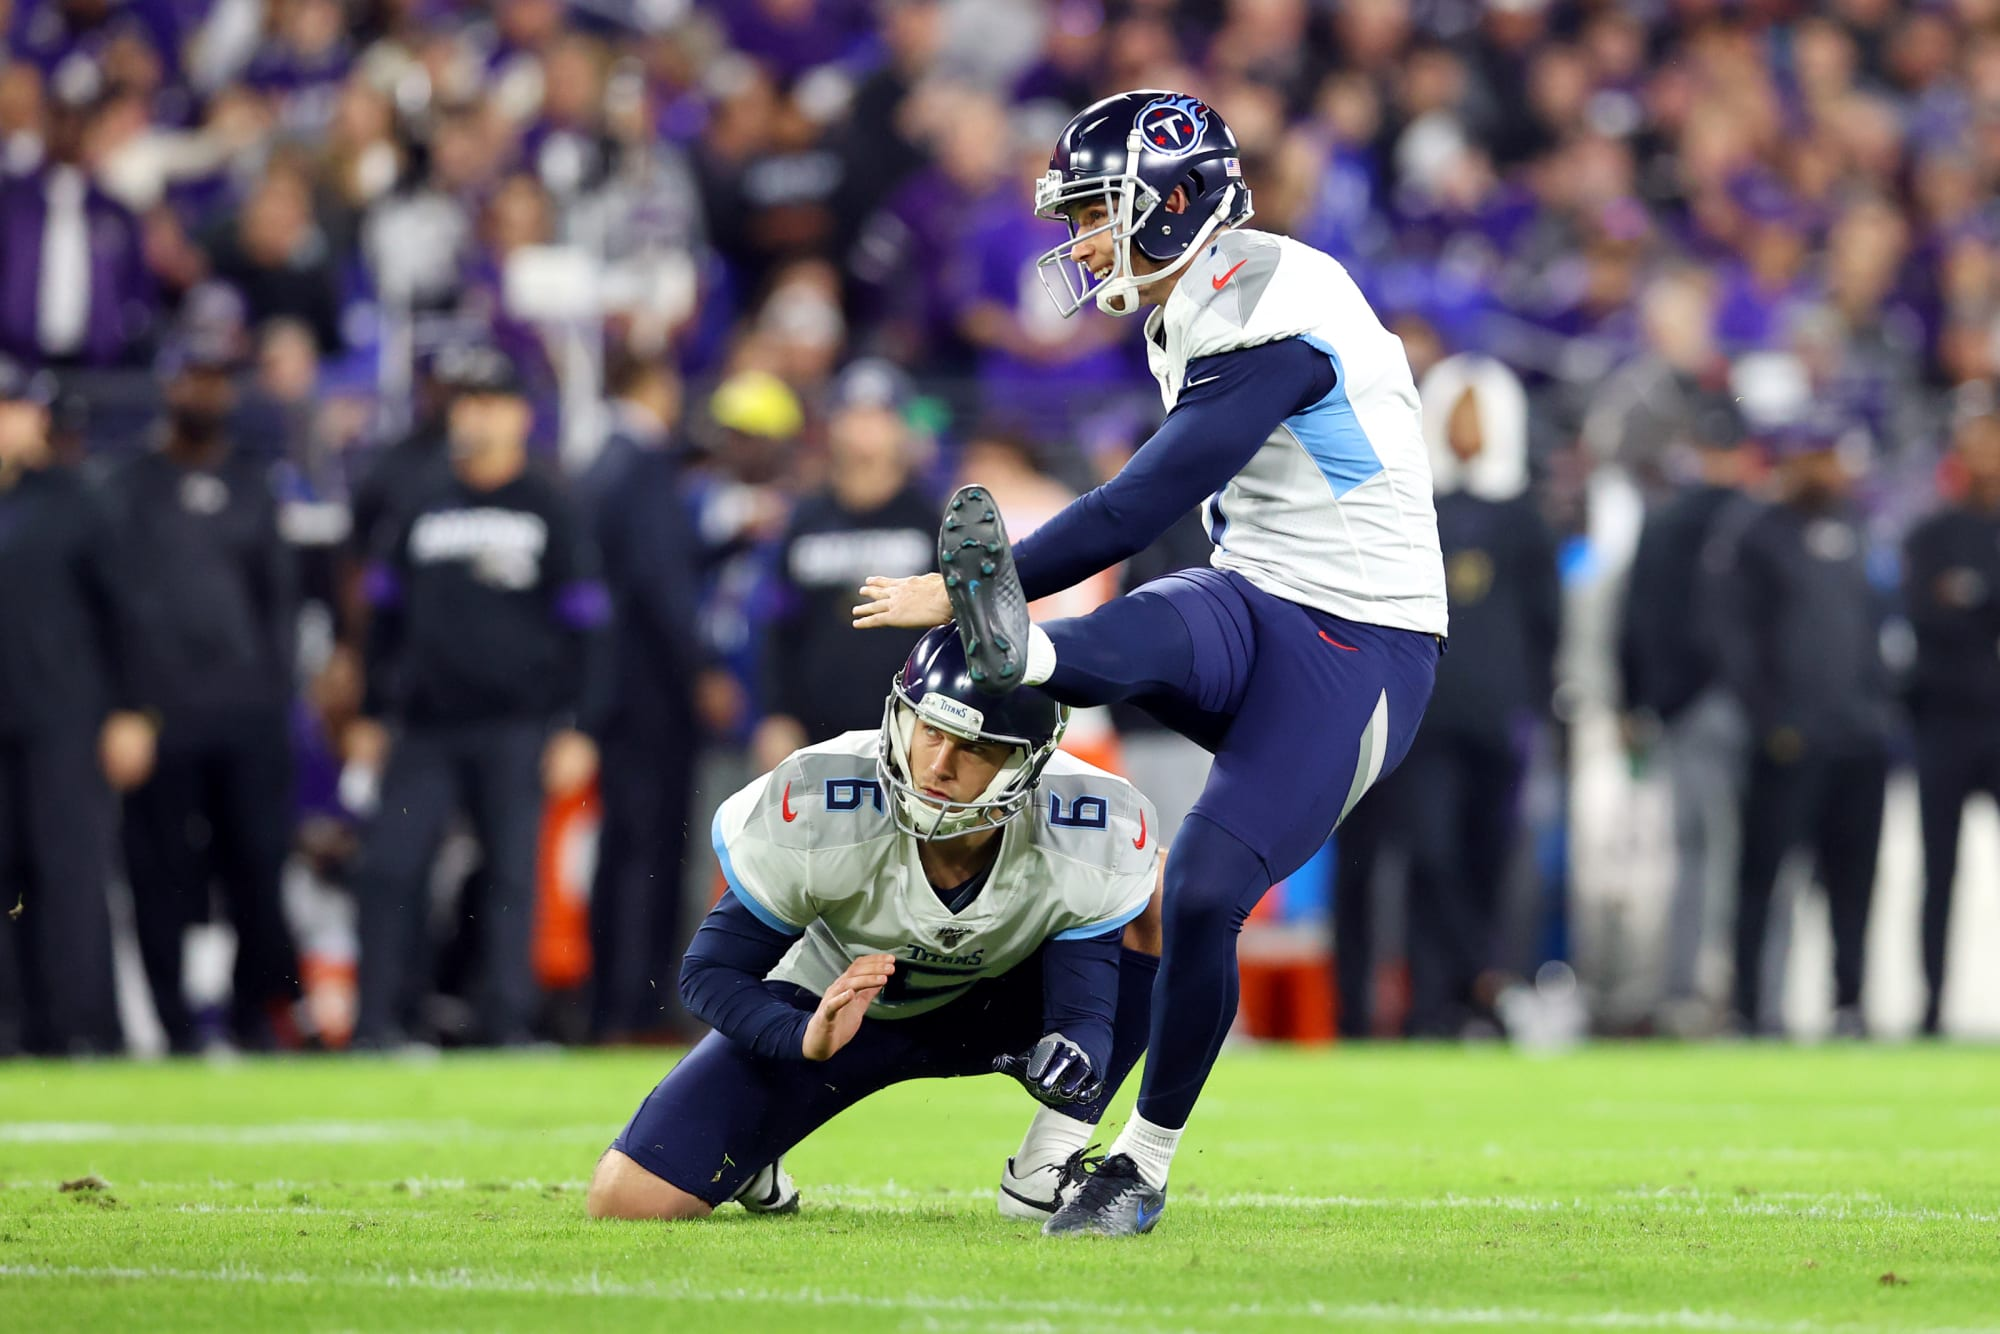 Interesting overseas option for the Titans to compete with kicker Greg Joseph